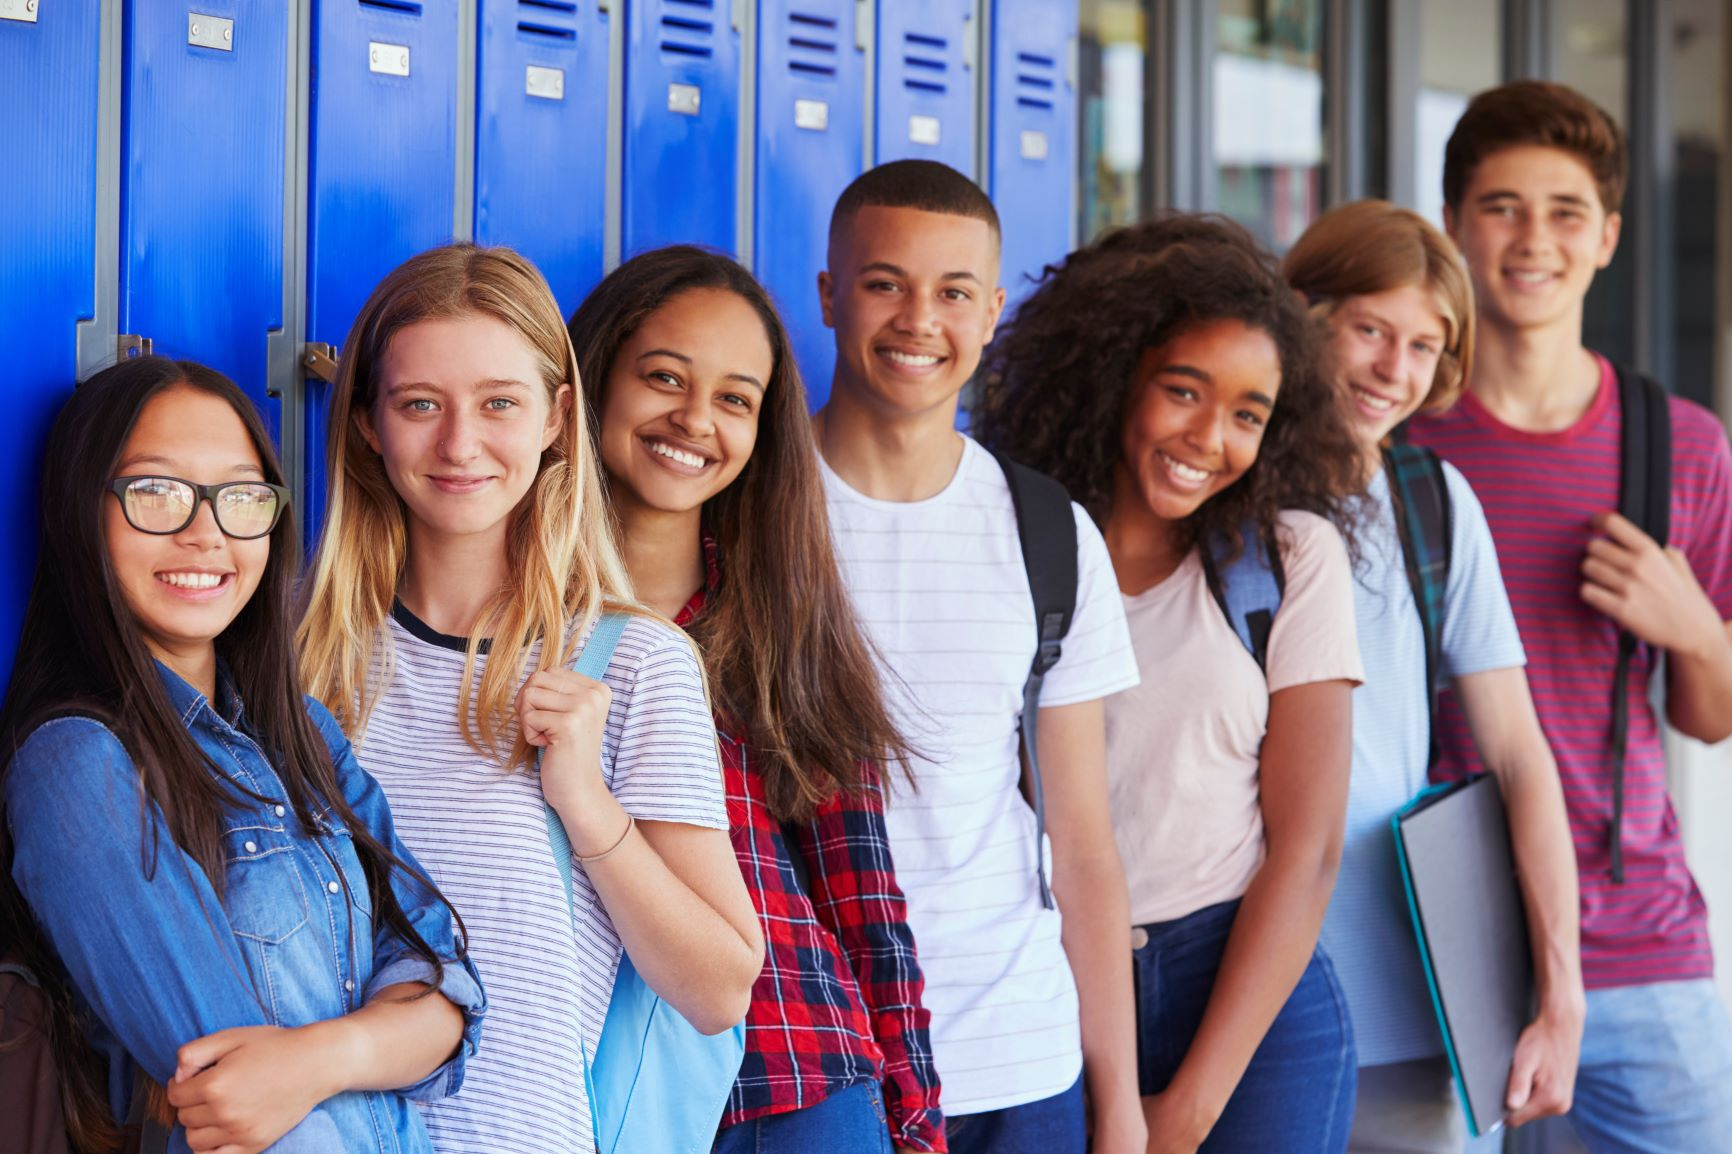 A group of teens standing next to lockers in school